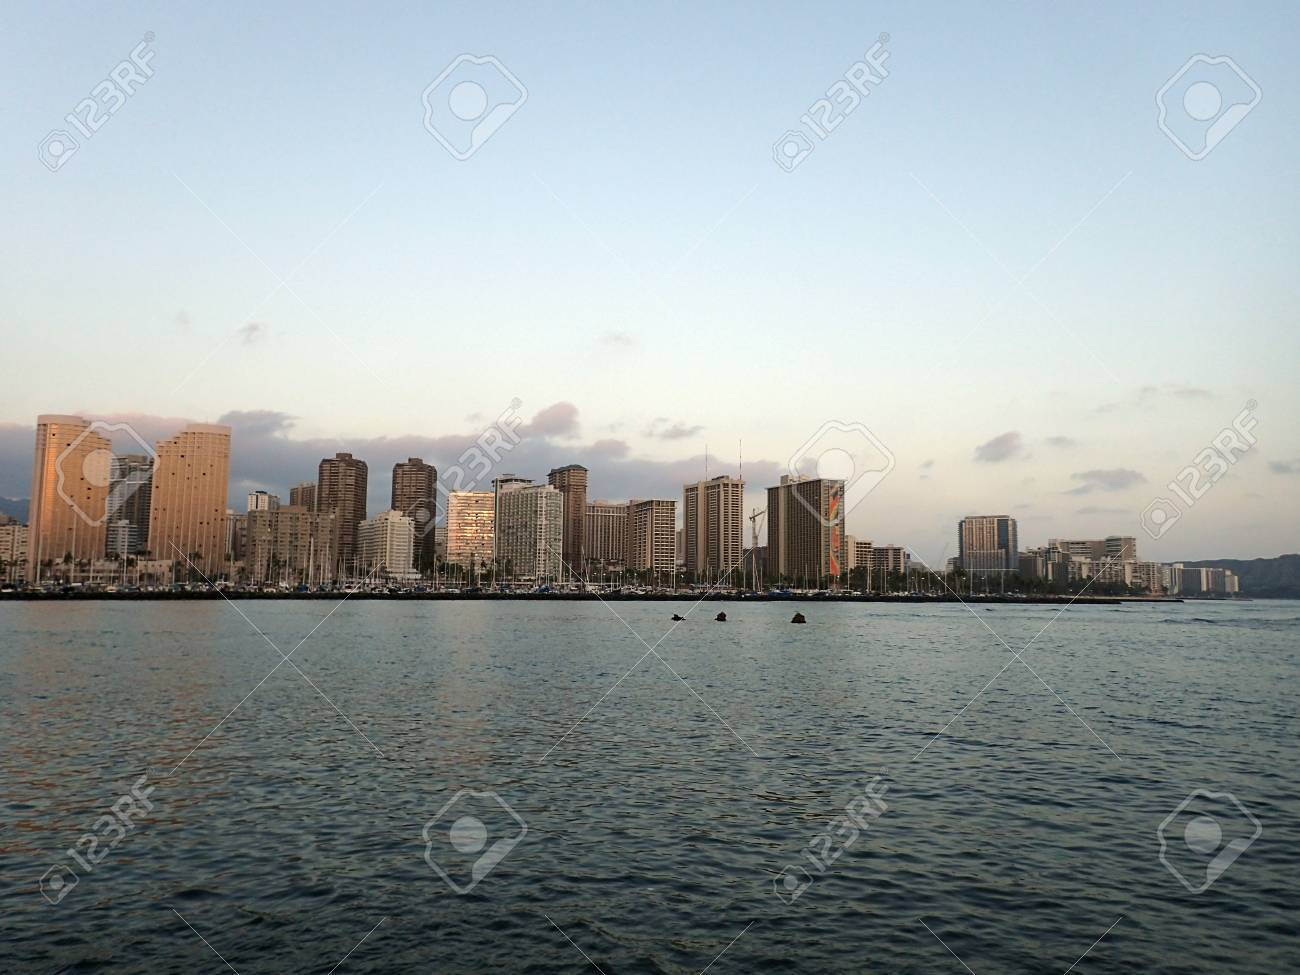 Skyline Of Waikiki At Sunset Or Dusk With Yachts And Boats In ...